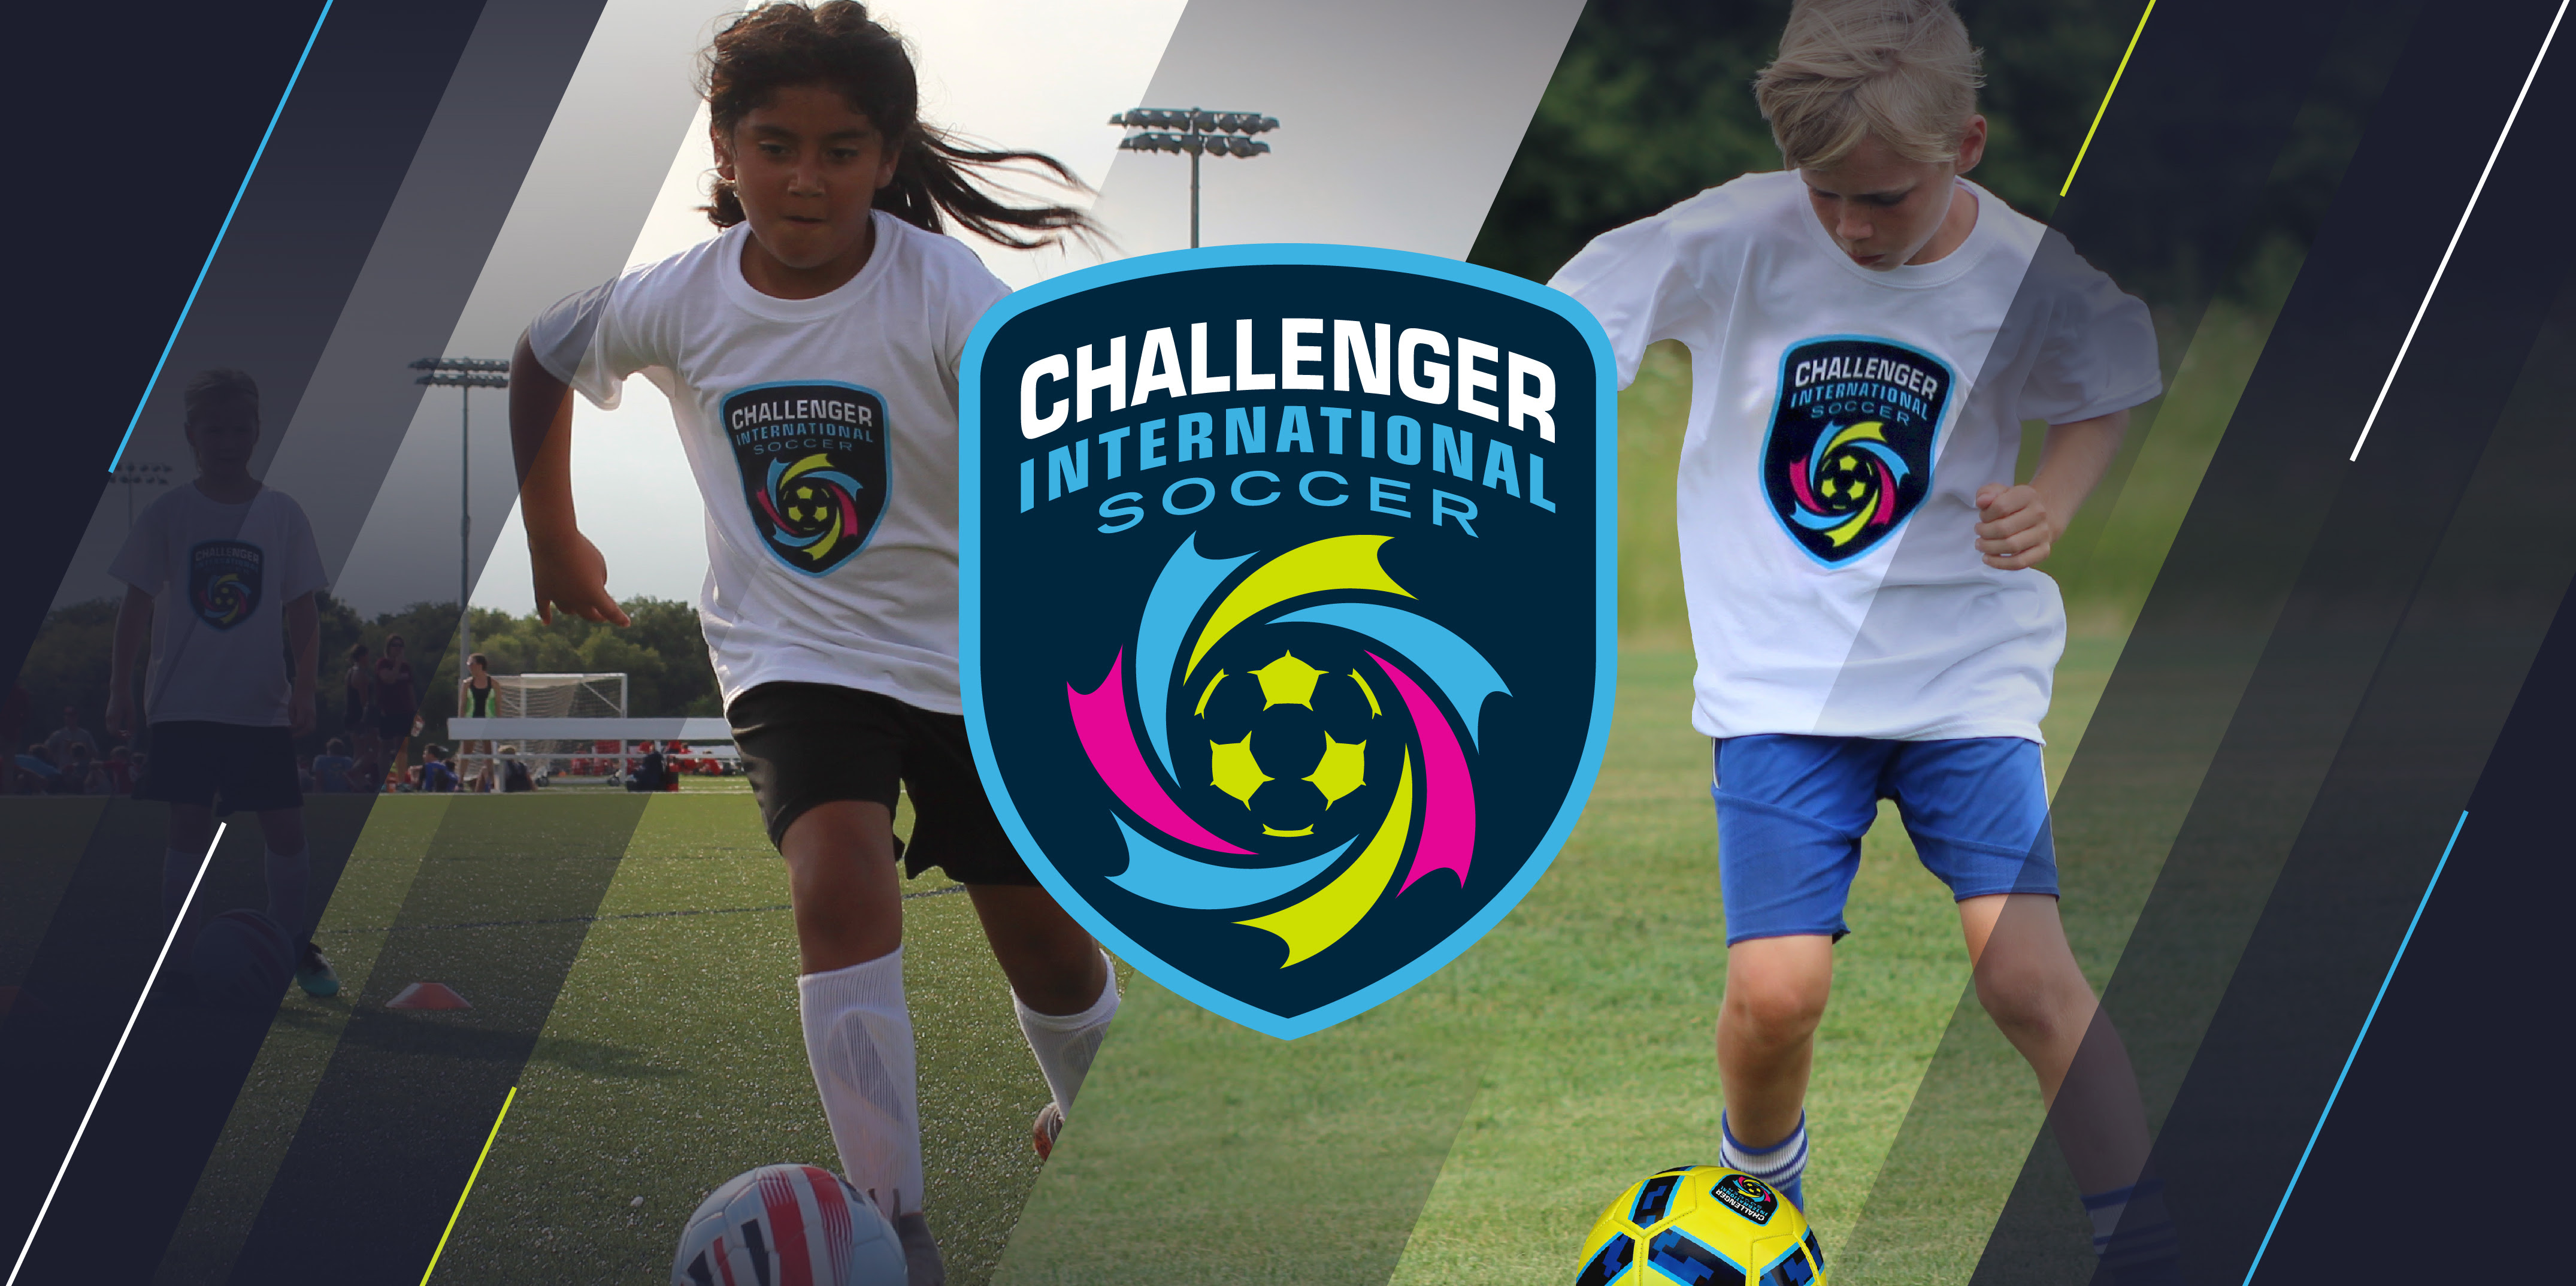 Challenger International Soccer Banner